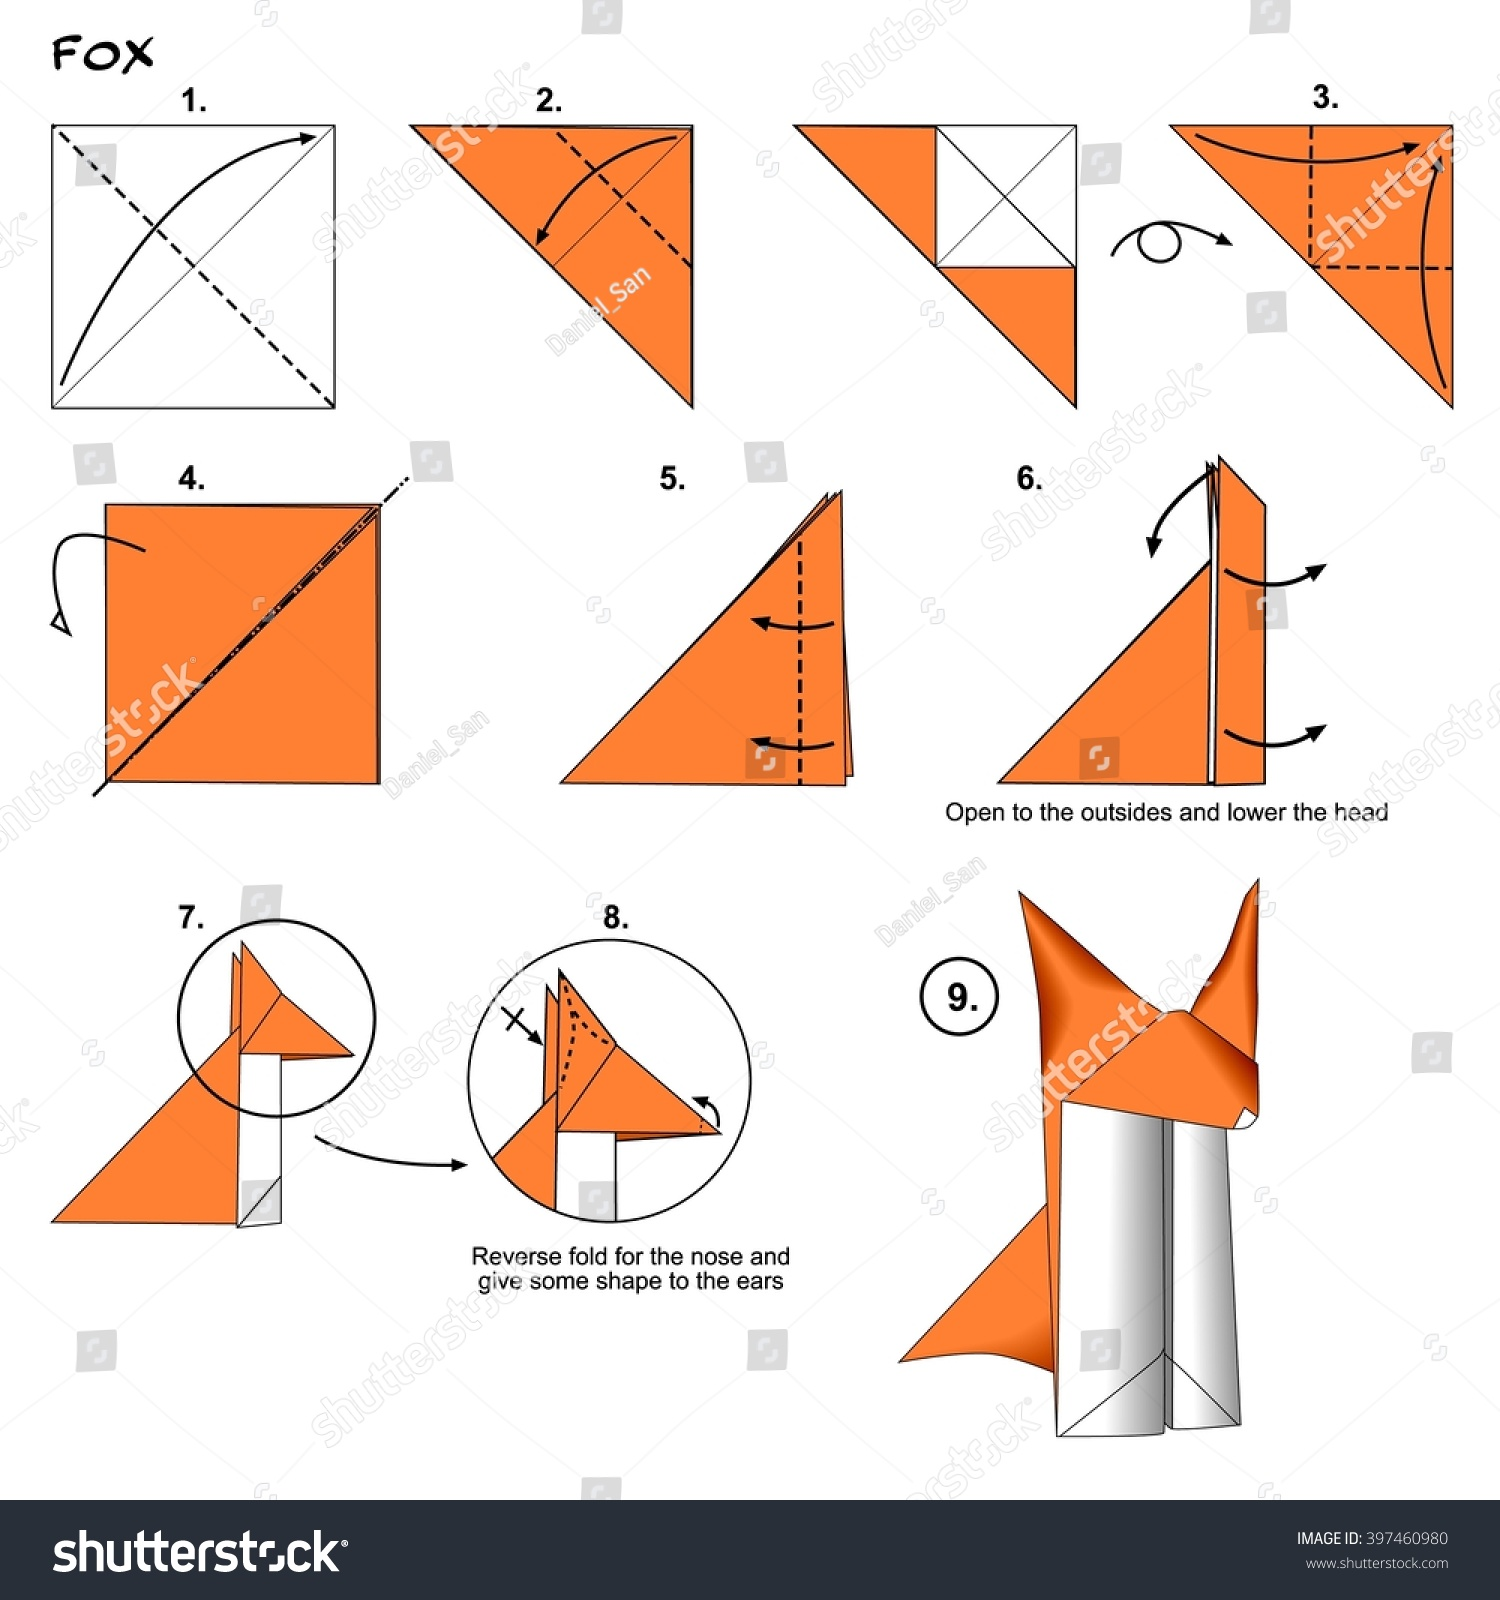 origami wolf instructions diagram ge xl44 oven wiring animal traditional fox stock